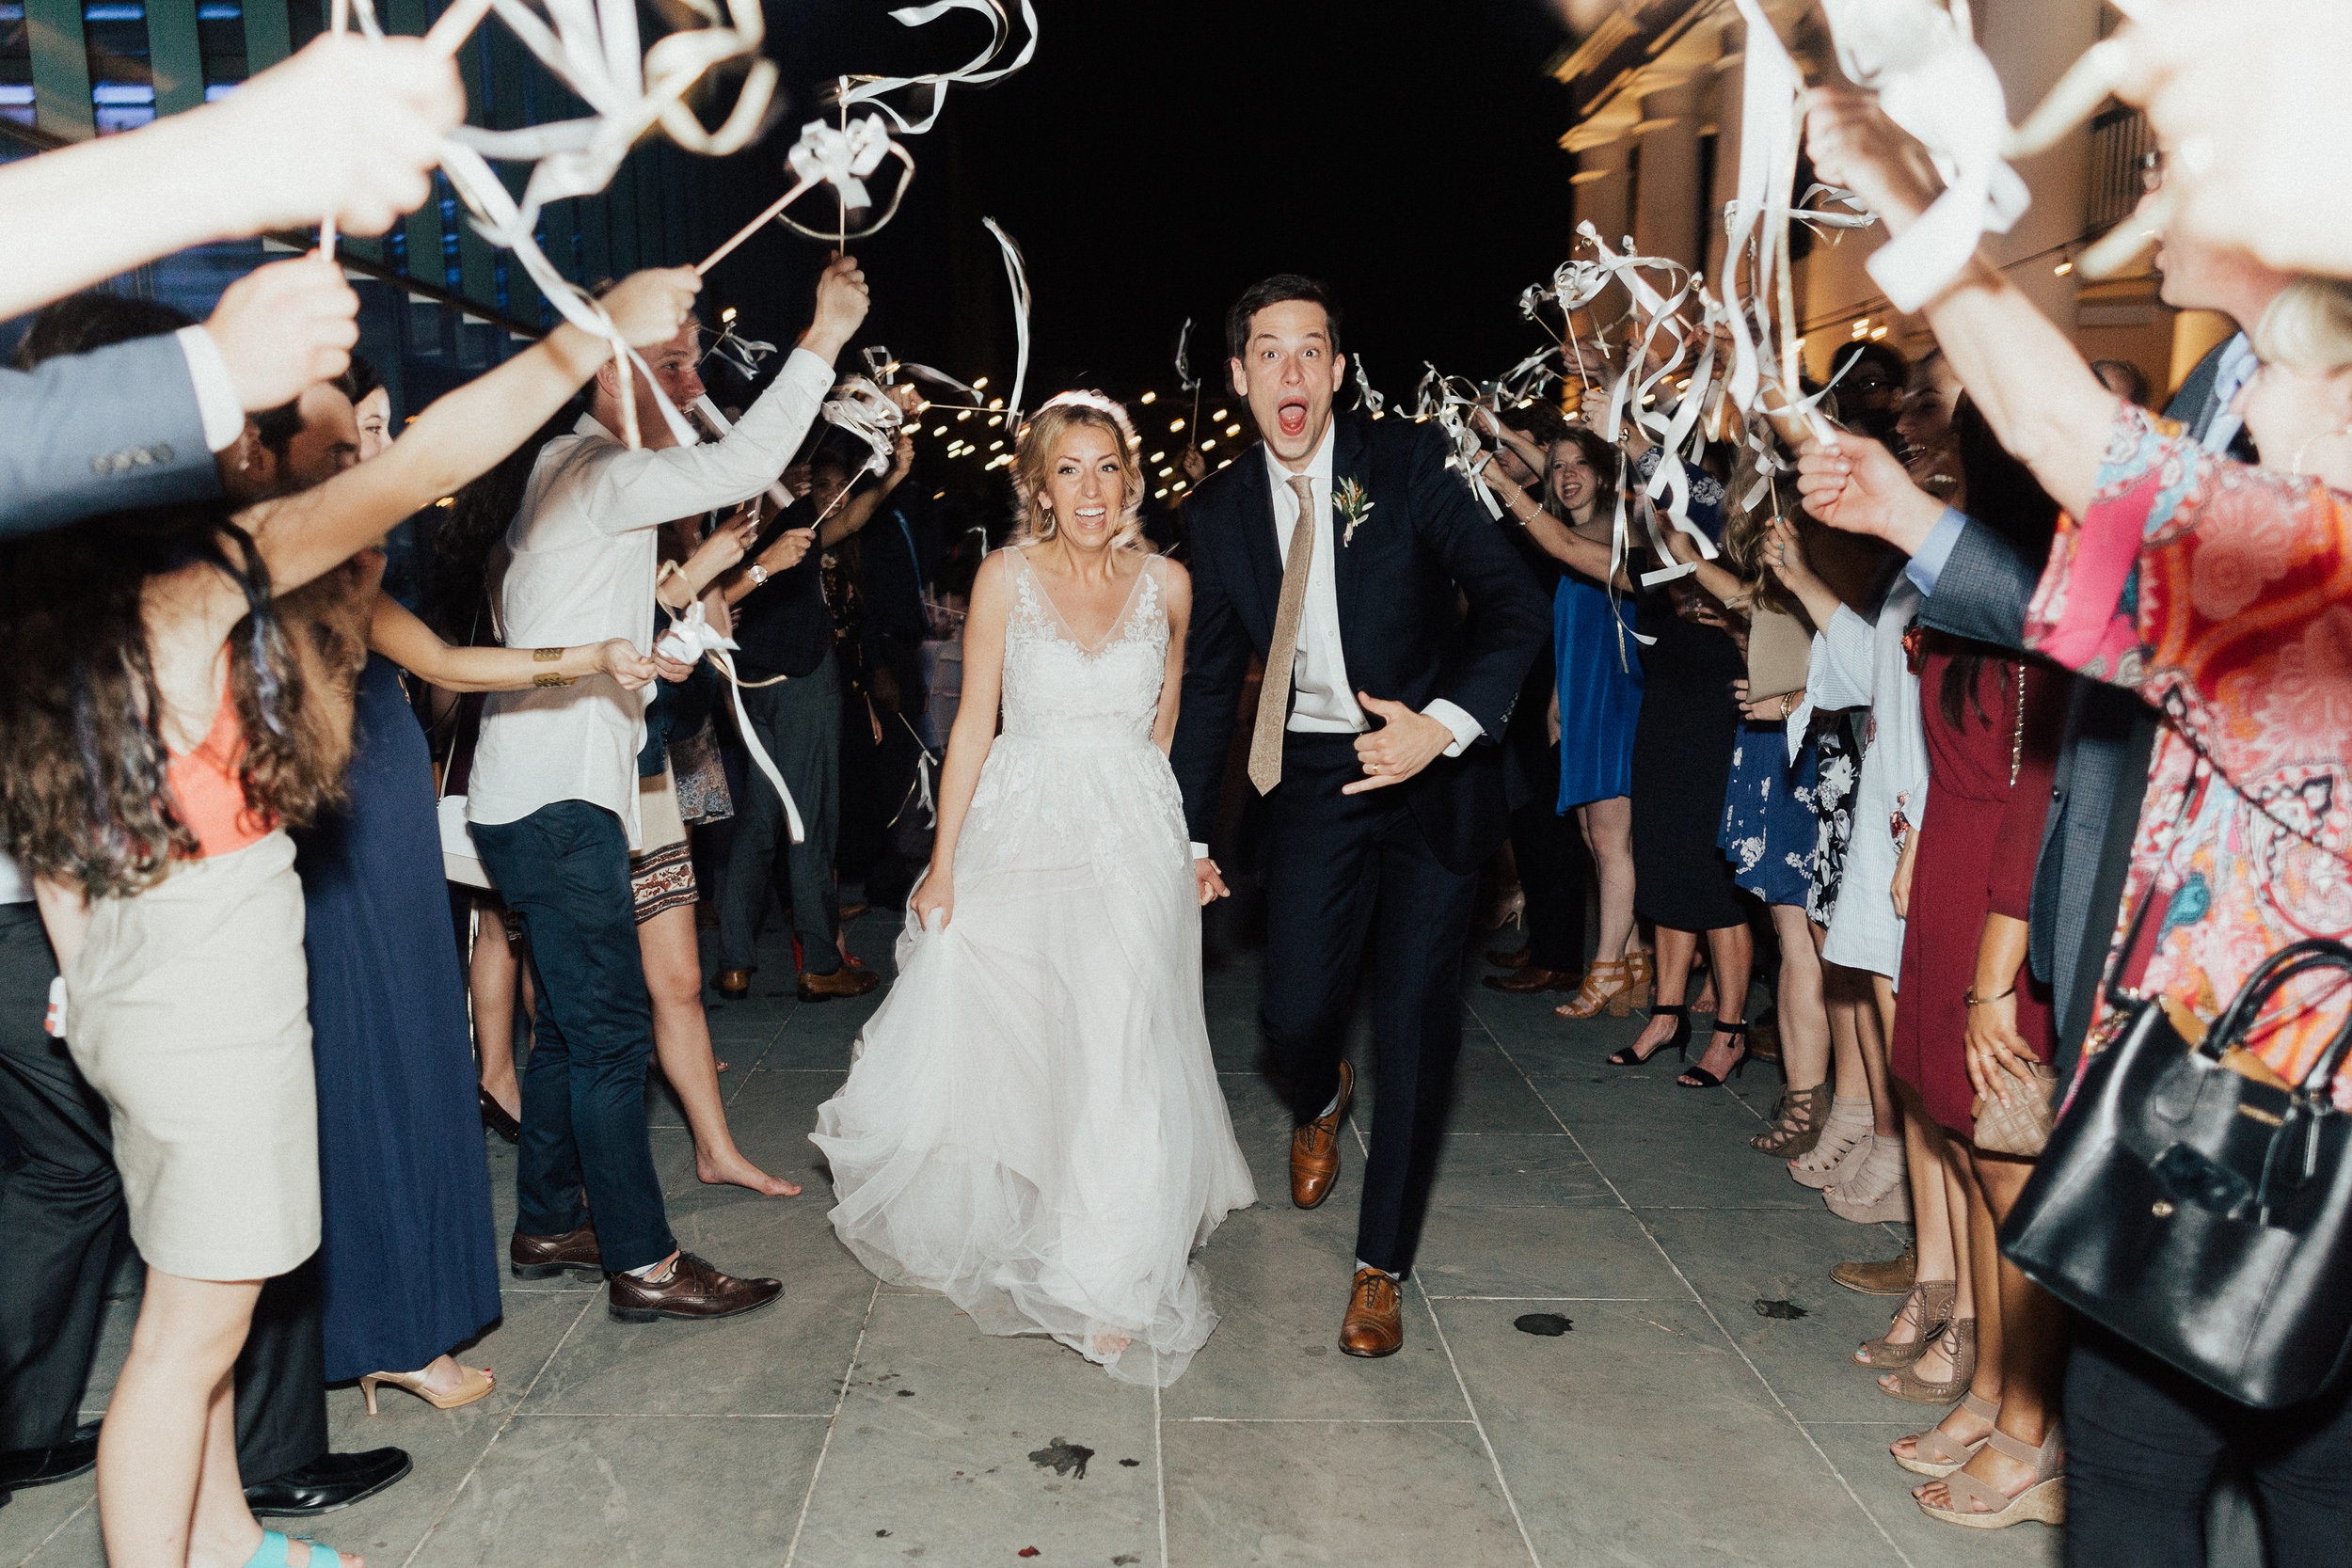 Southern Fete, Southern Wedding, Easytown Sound Co., Carolynn Seibert Photography, Bride and Groom